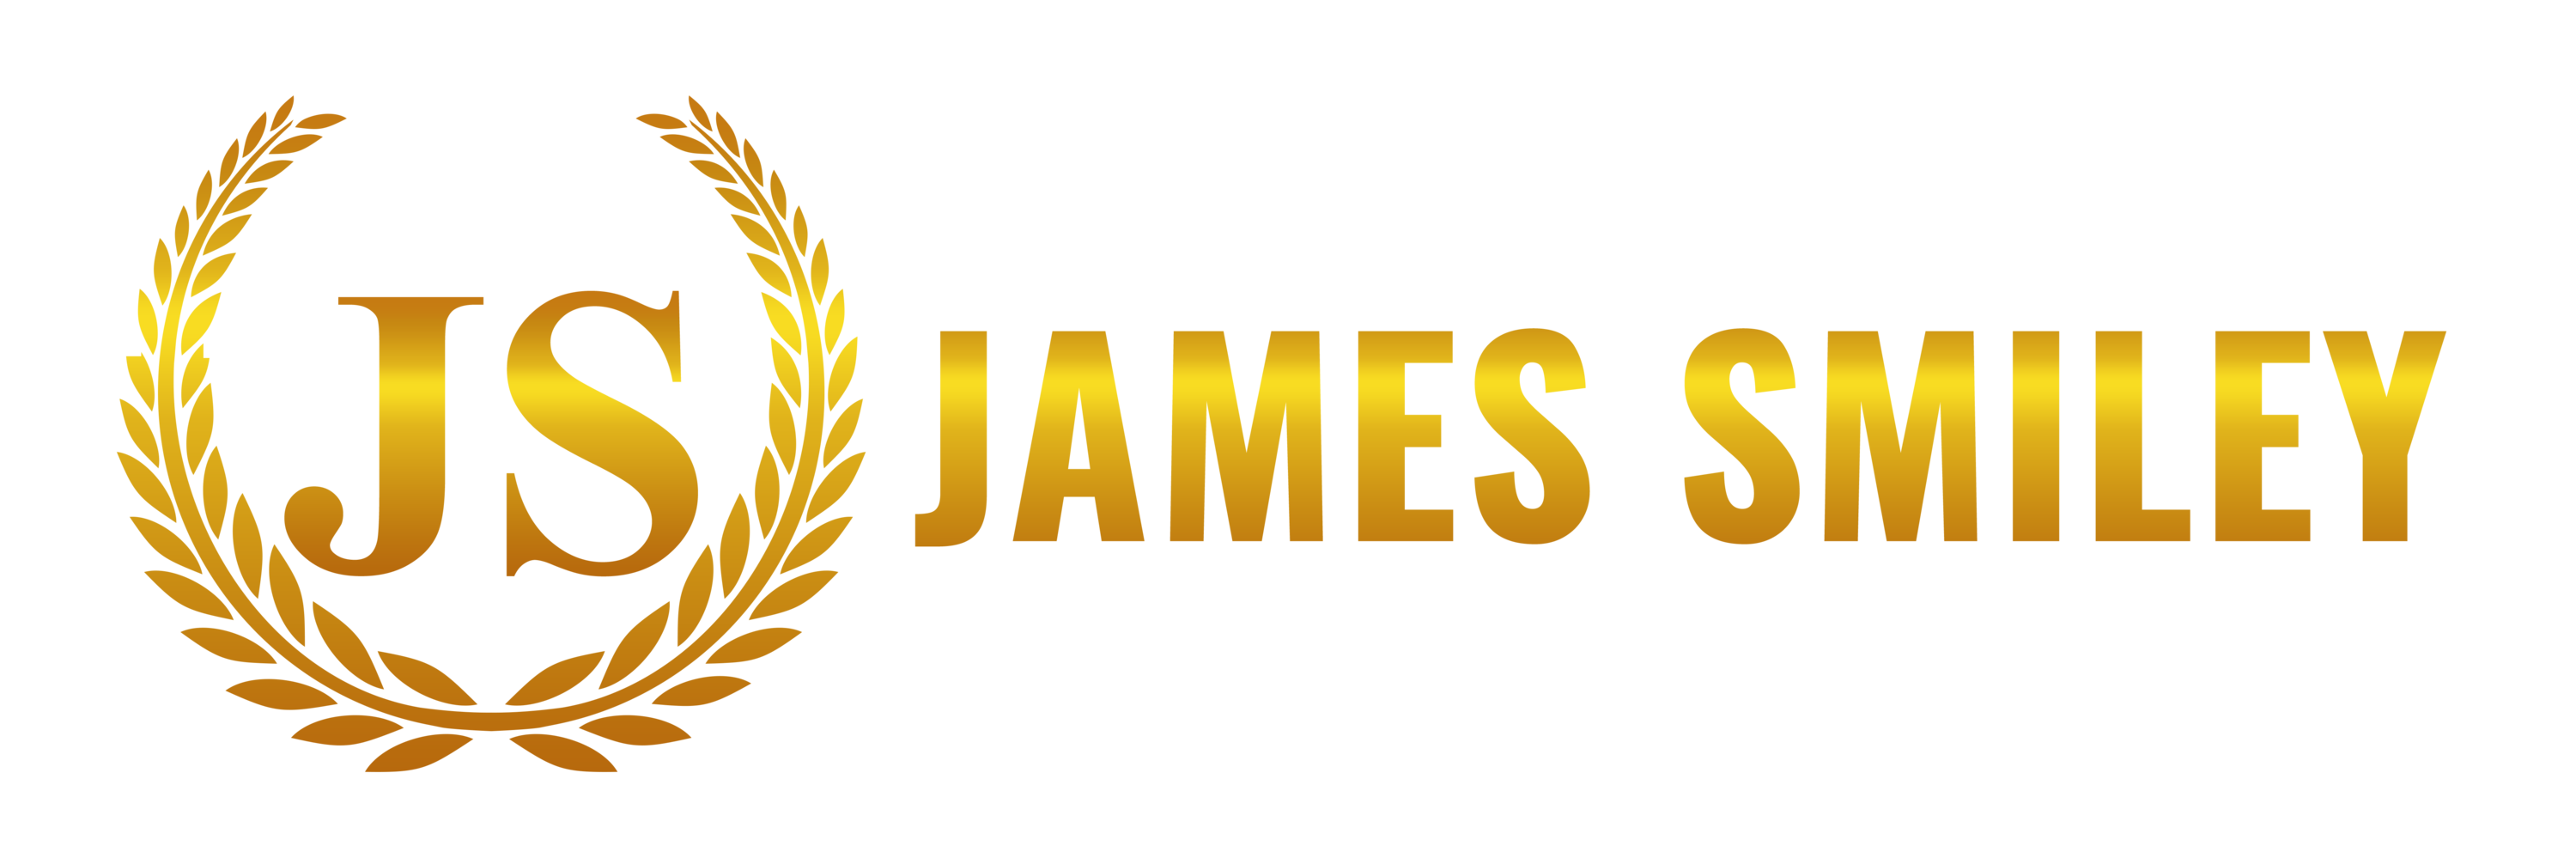 James Smiley